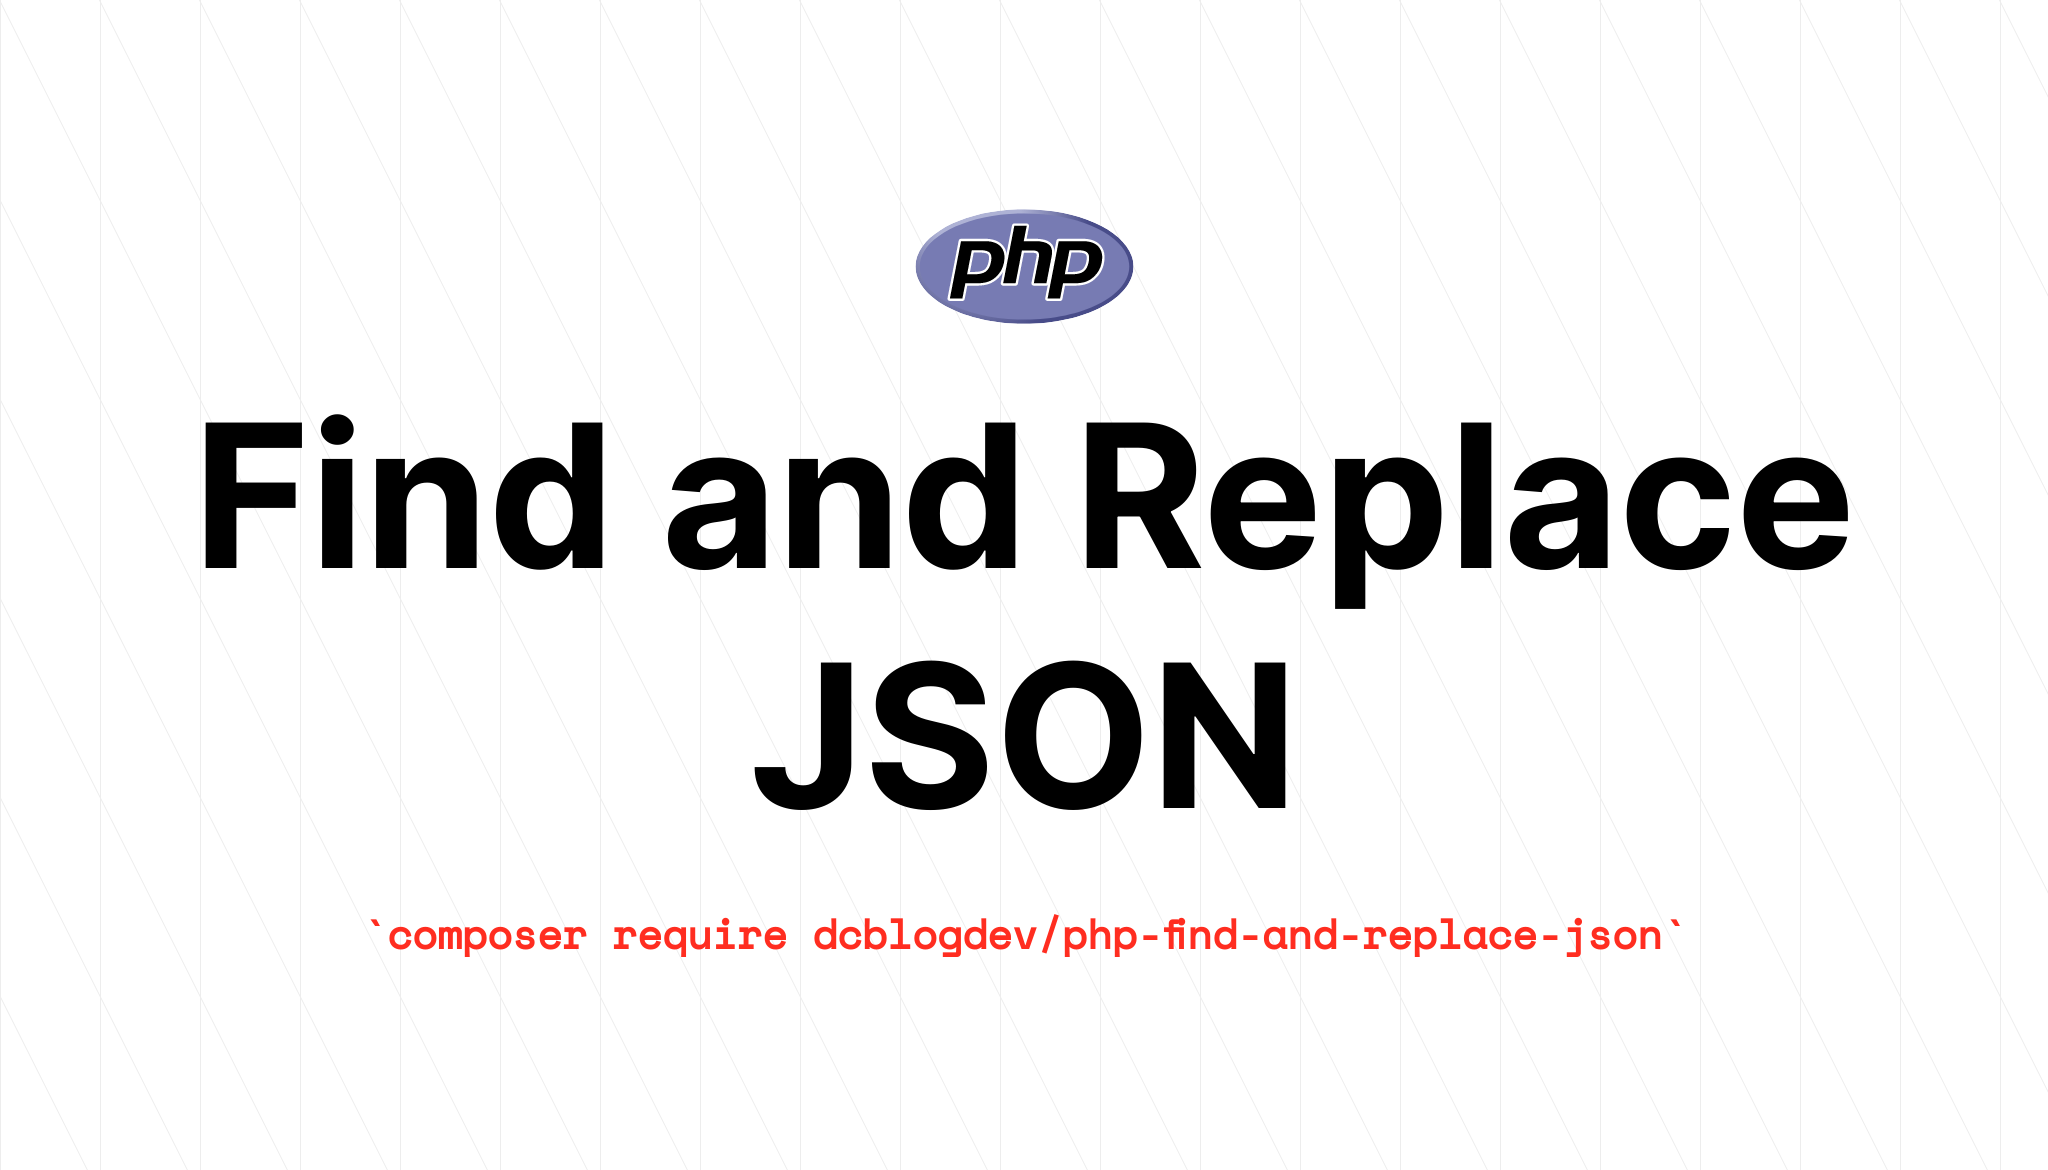 PHP find and replace JSON